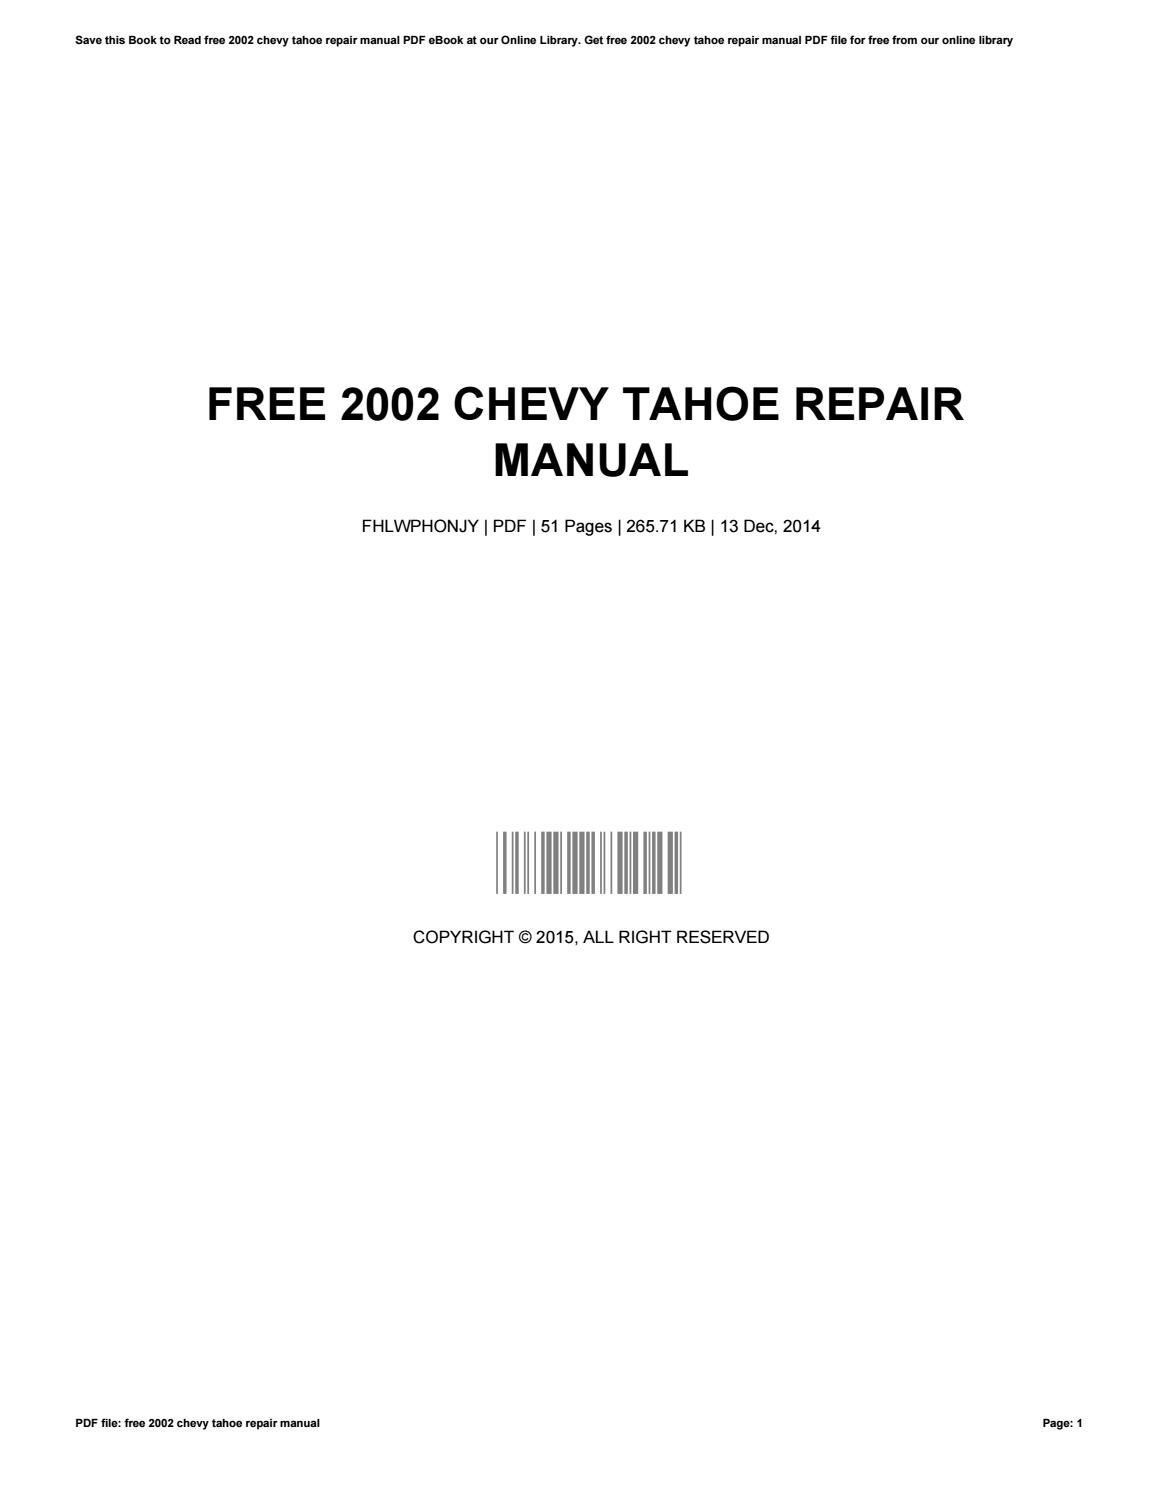 Not a SERVICE manual. Last edited: Dec. Forum software by XenForo™  ©2010-2015 XenForo Ltd. XenForo style by Pixel. Chevrolet Tahoe for  factory, ...